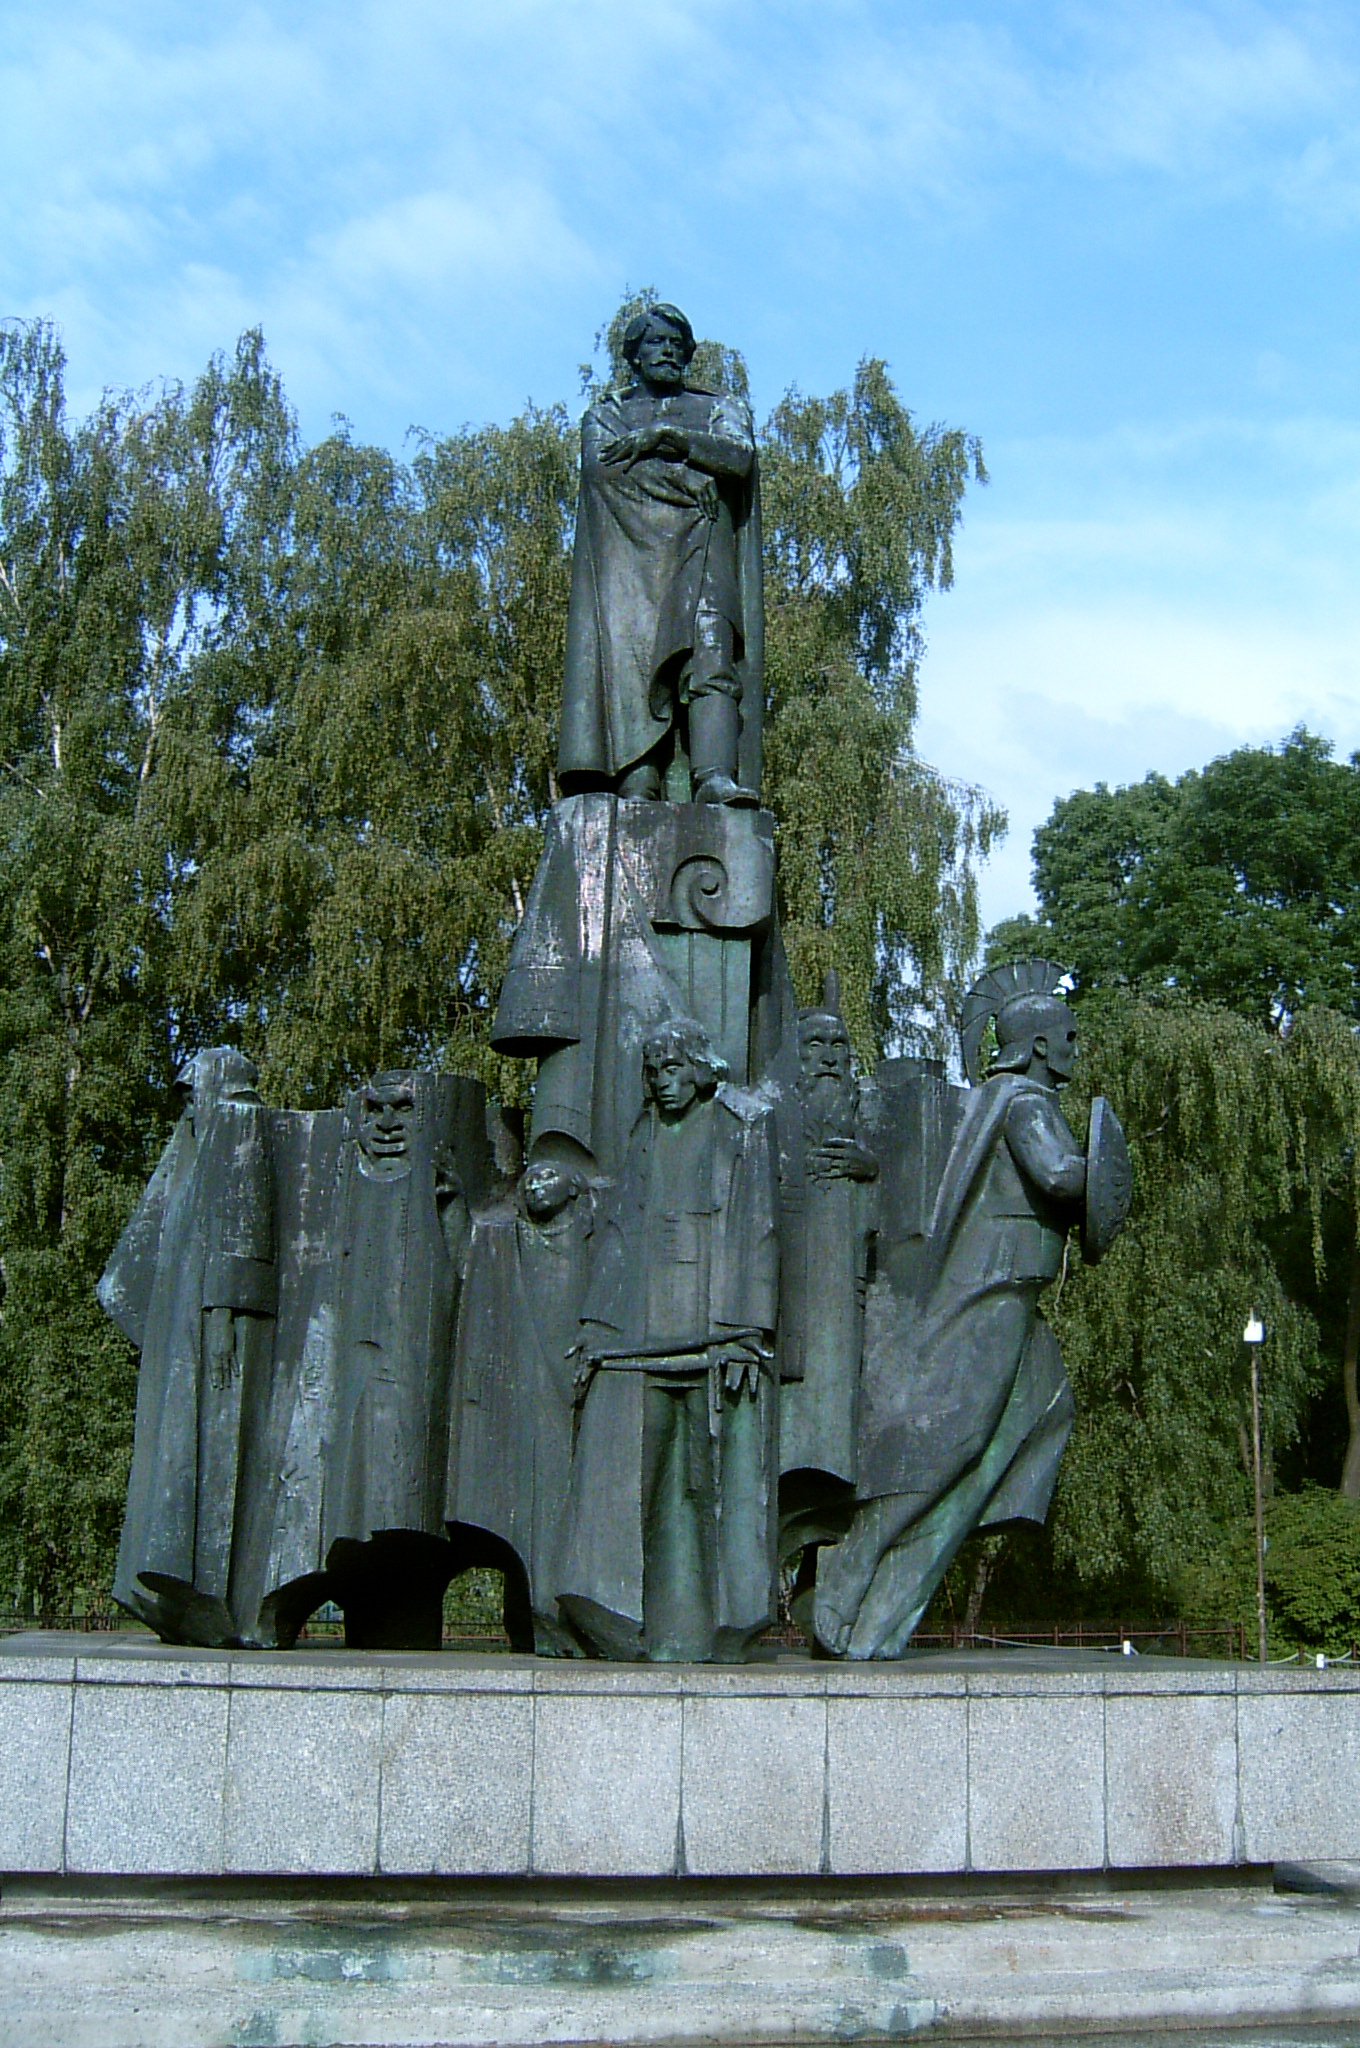 https://upload.wikimedia.org/wikipedia/commons/9/9f/Stanis%C5%82aw_Wyspia%C5%84ski_Monument_in_Krak%C3%B3w_2.jpg